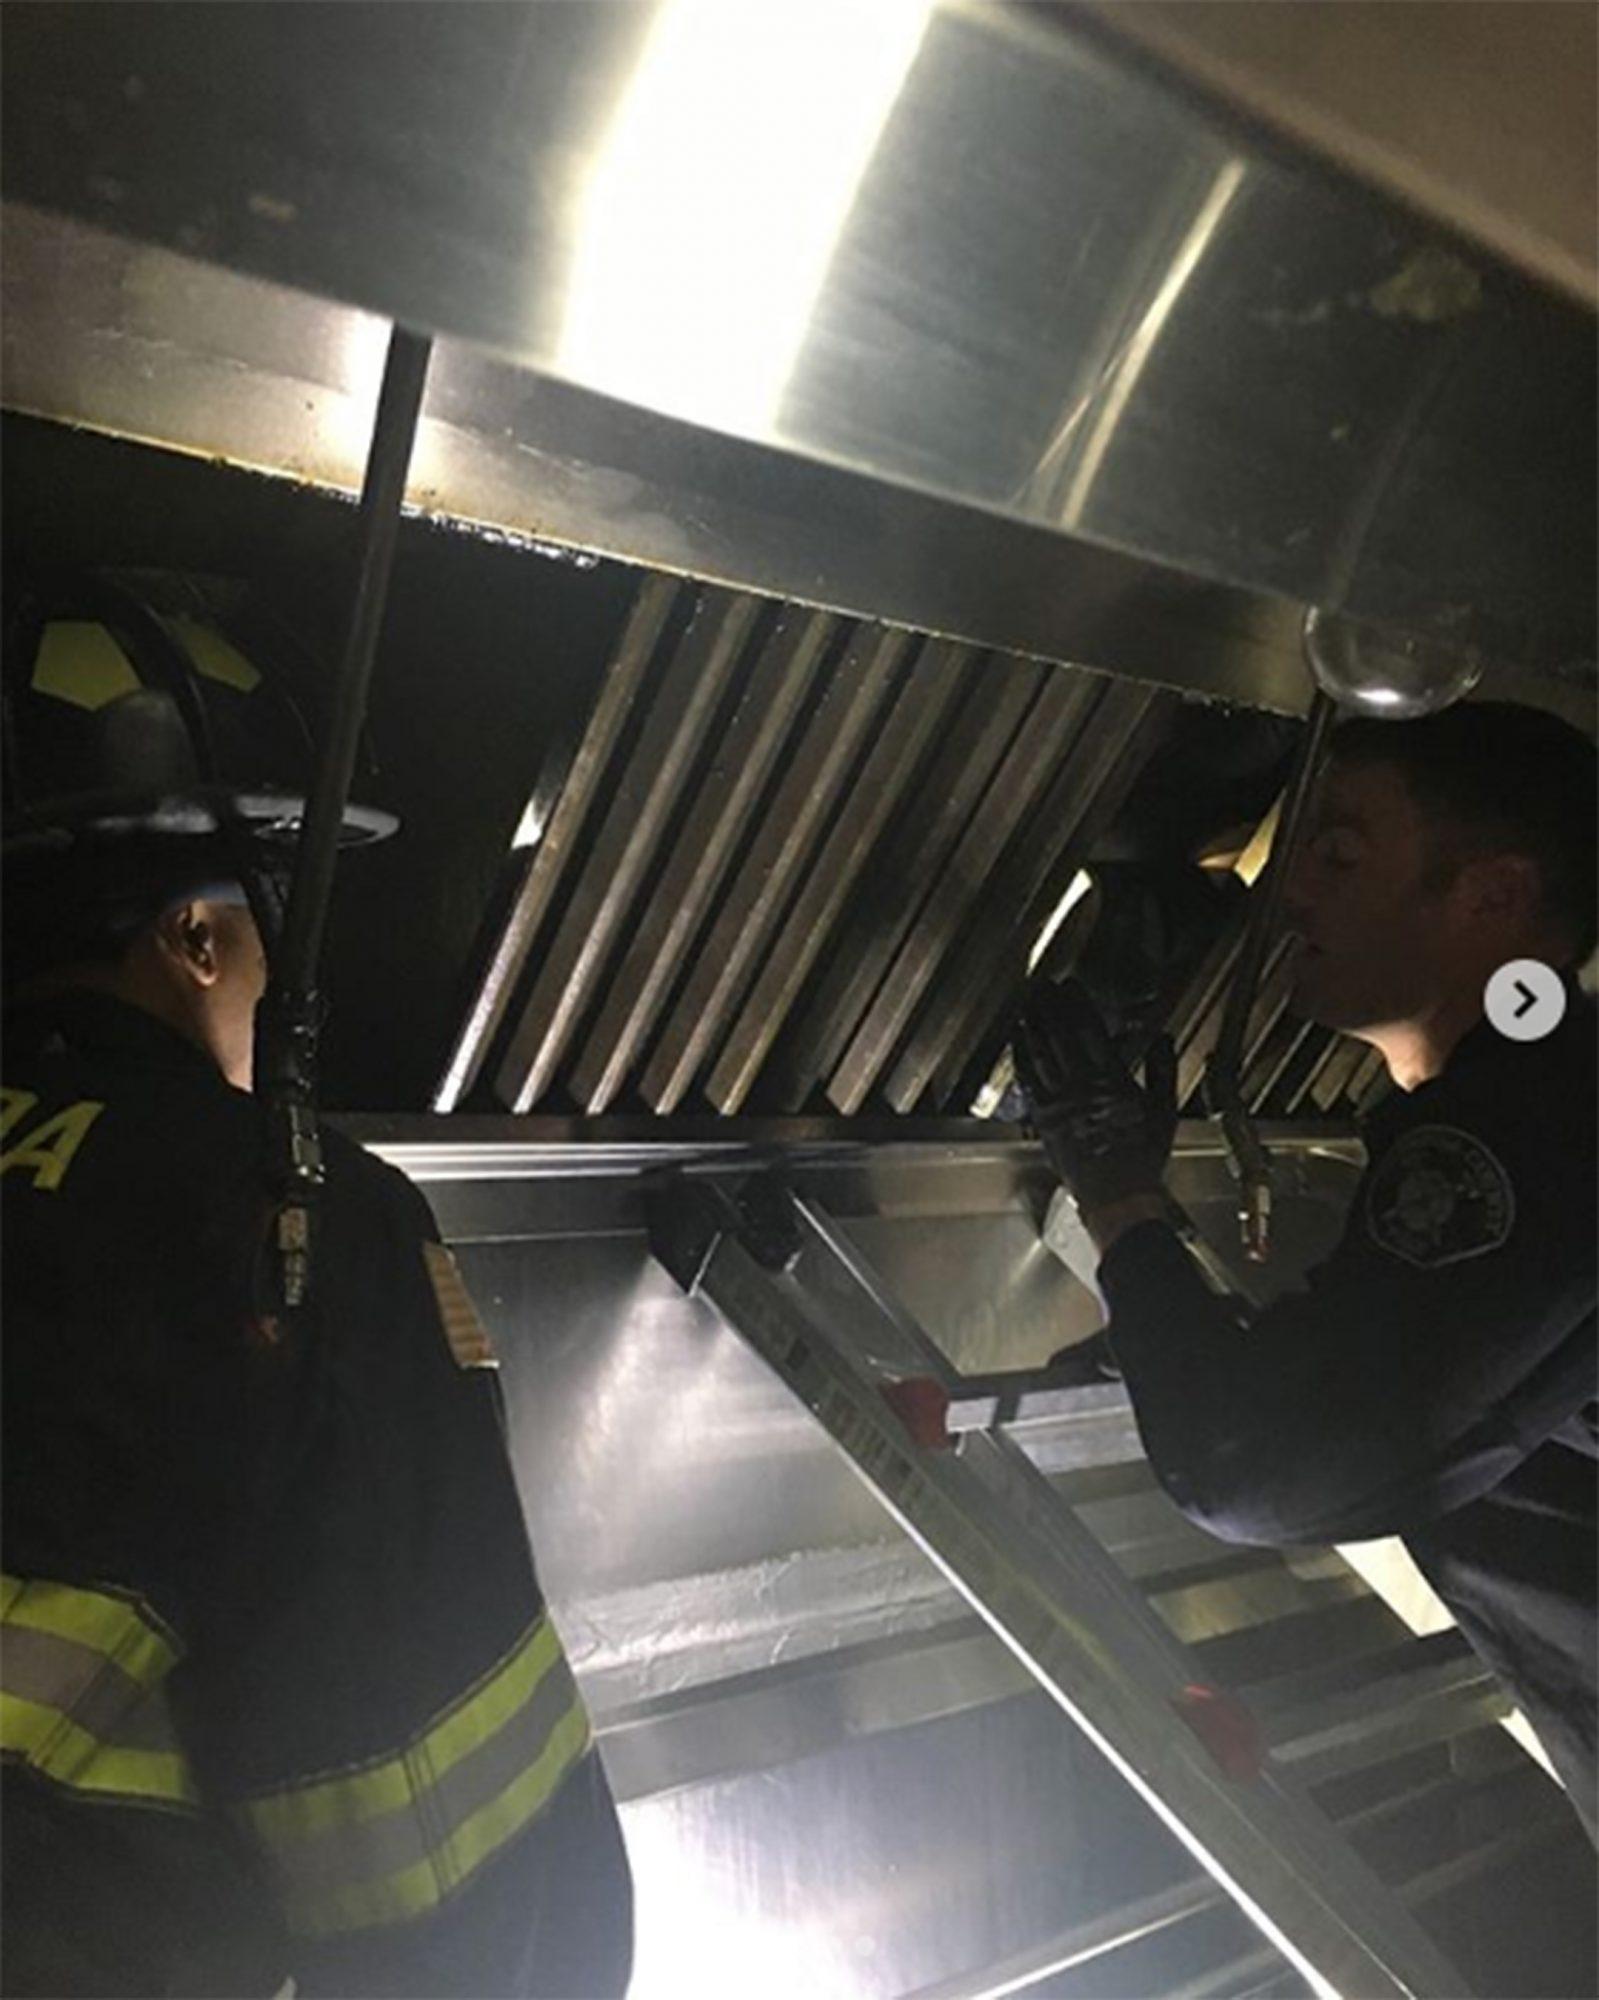 Man Rescued After Getting Stuck In Restaurant S Grease Vent For 2 Days People Com